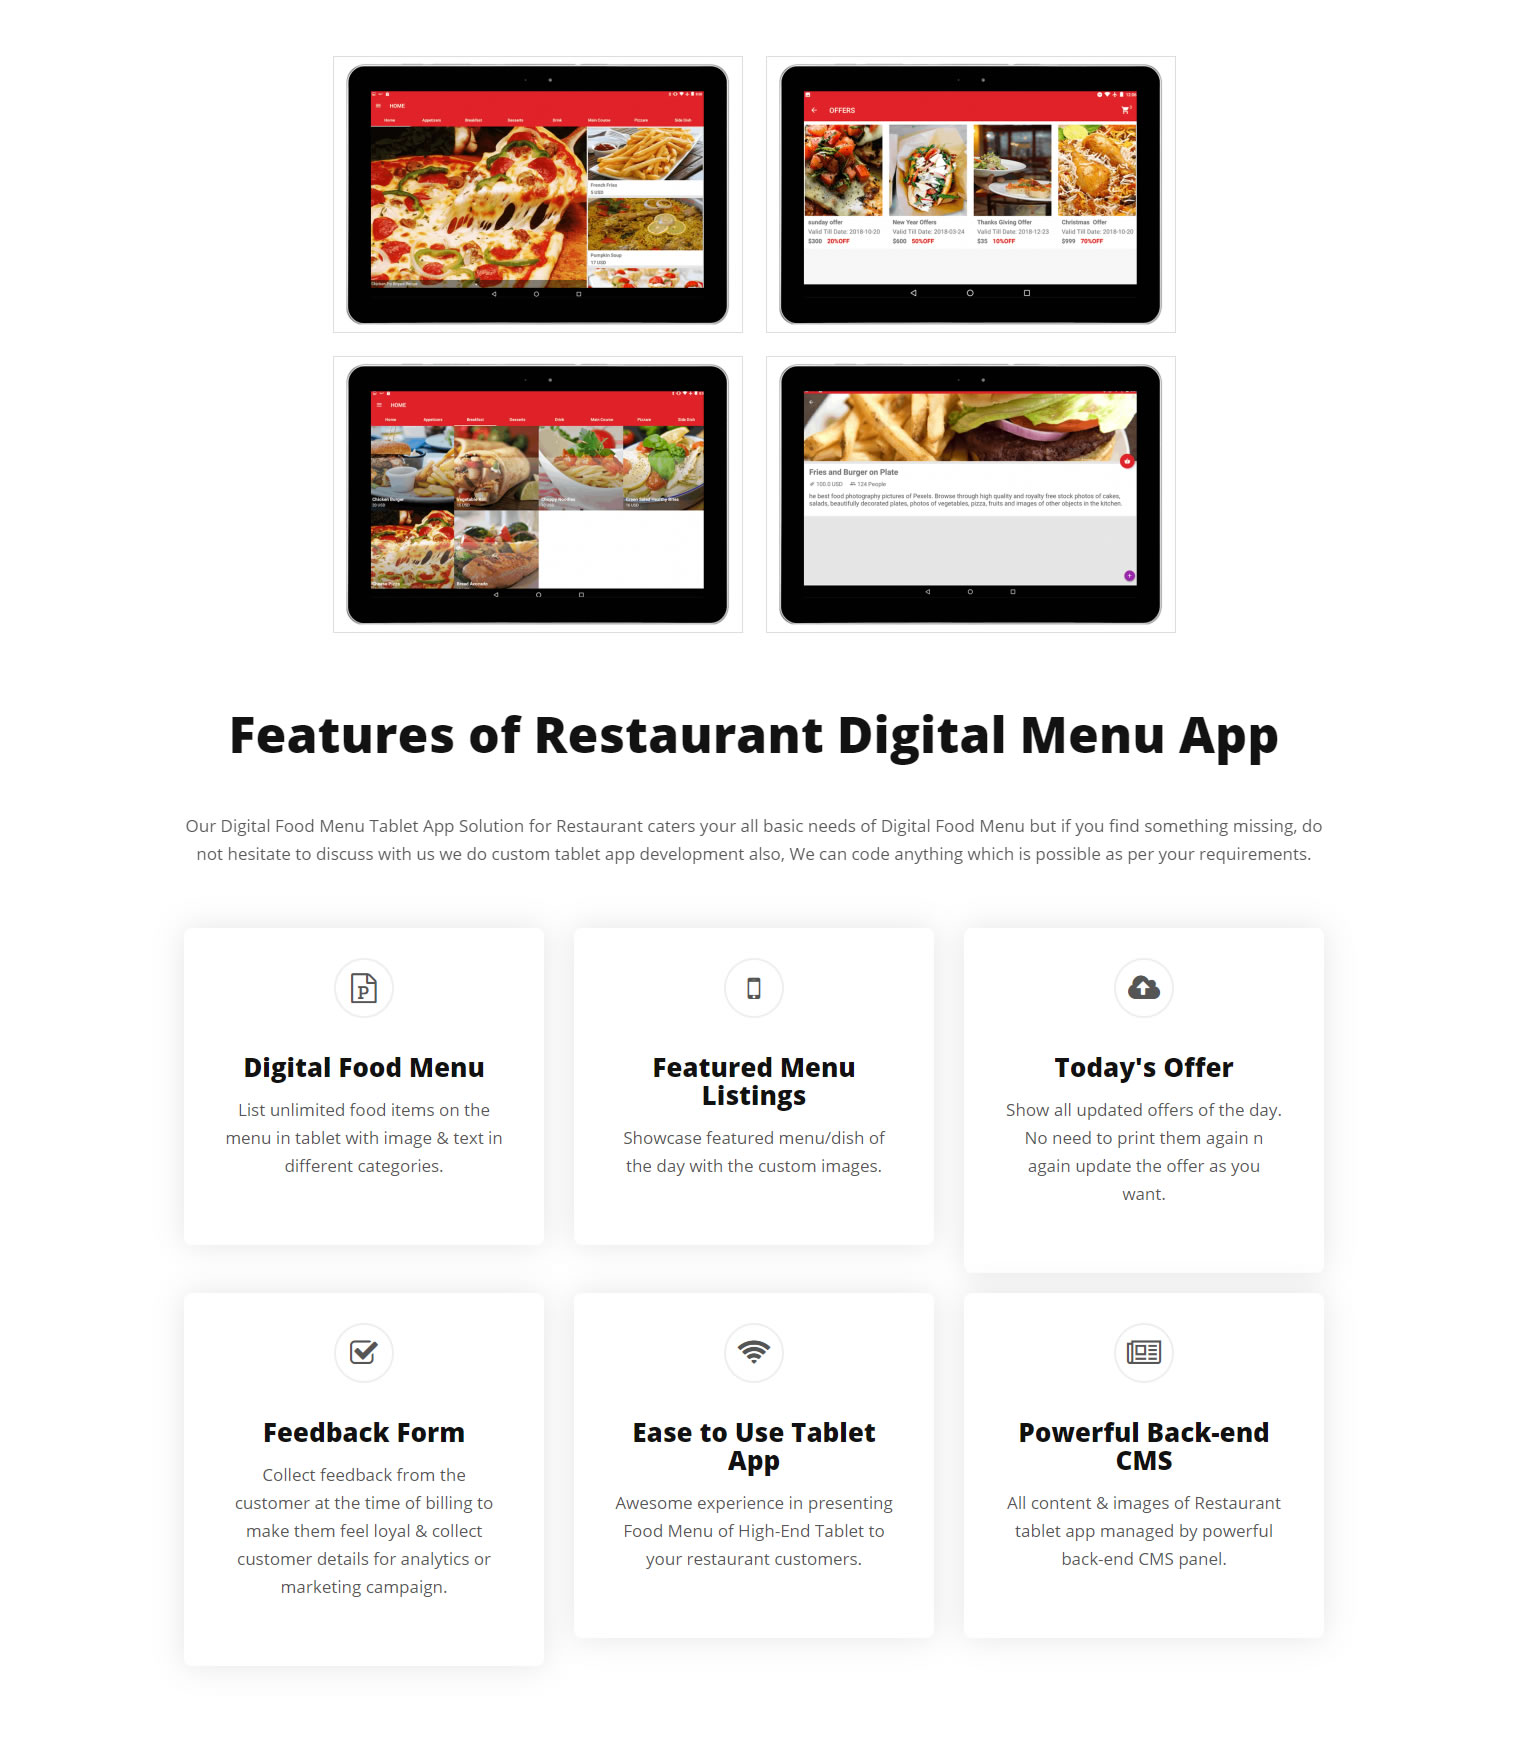 digital-food-menu-tablet-app-restaurants